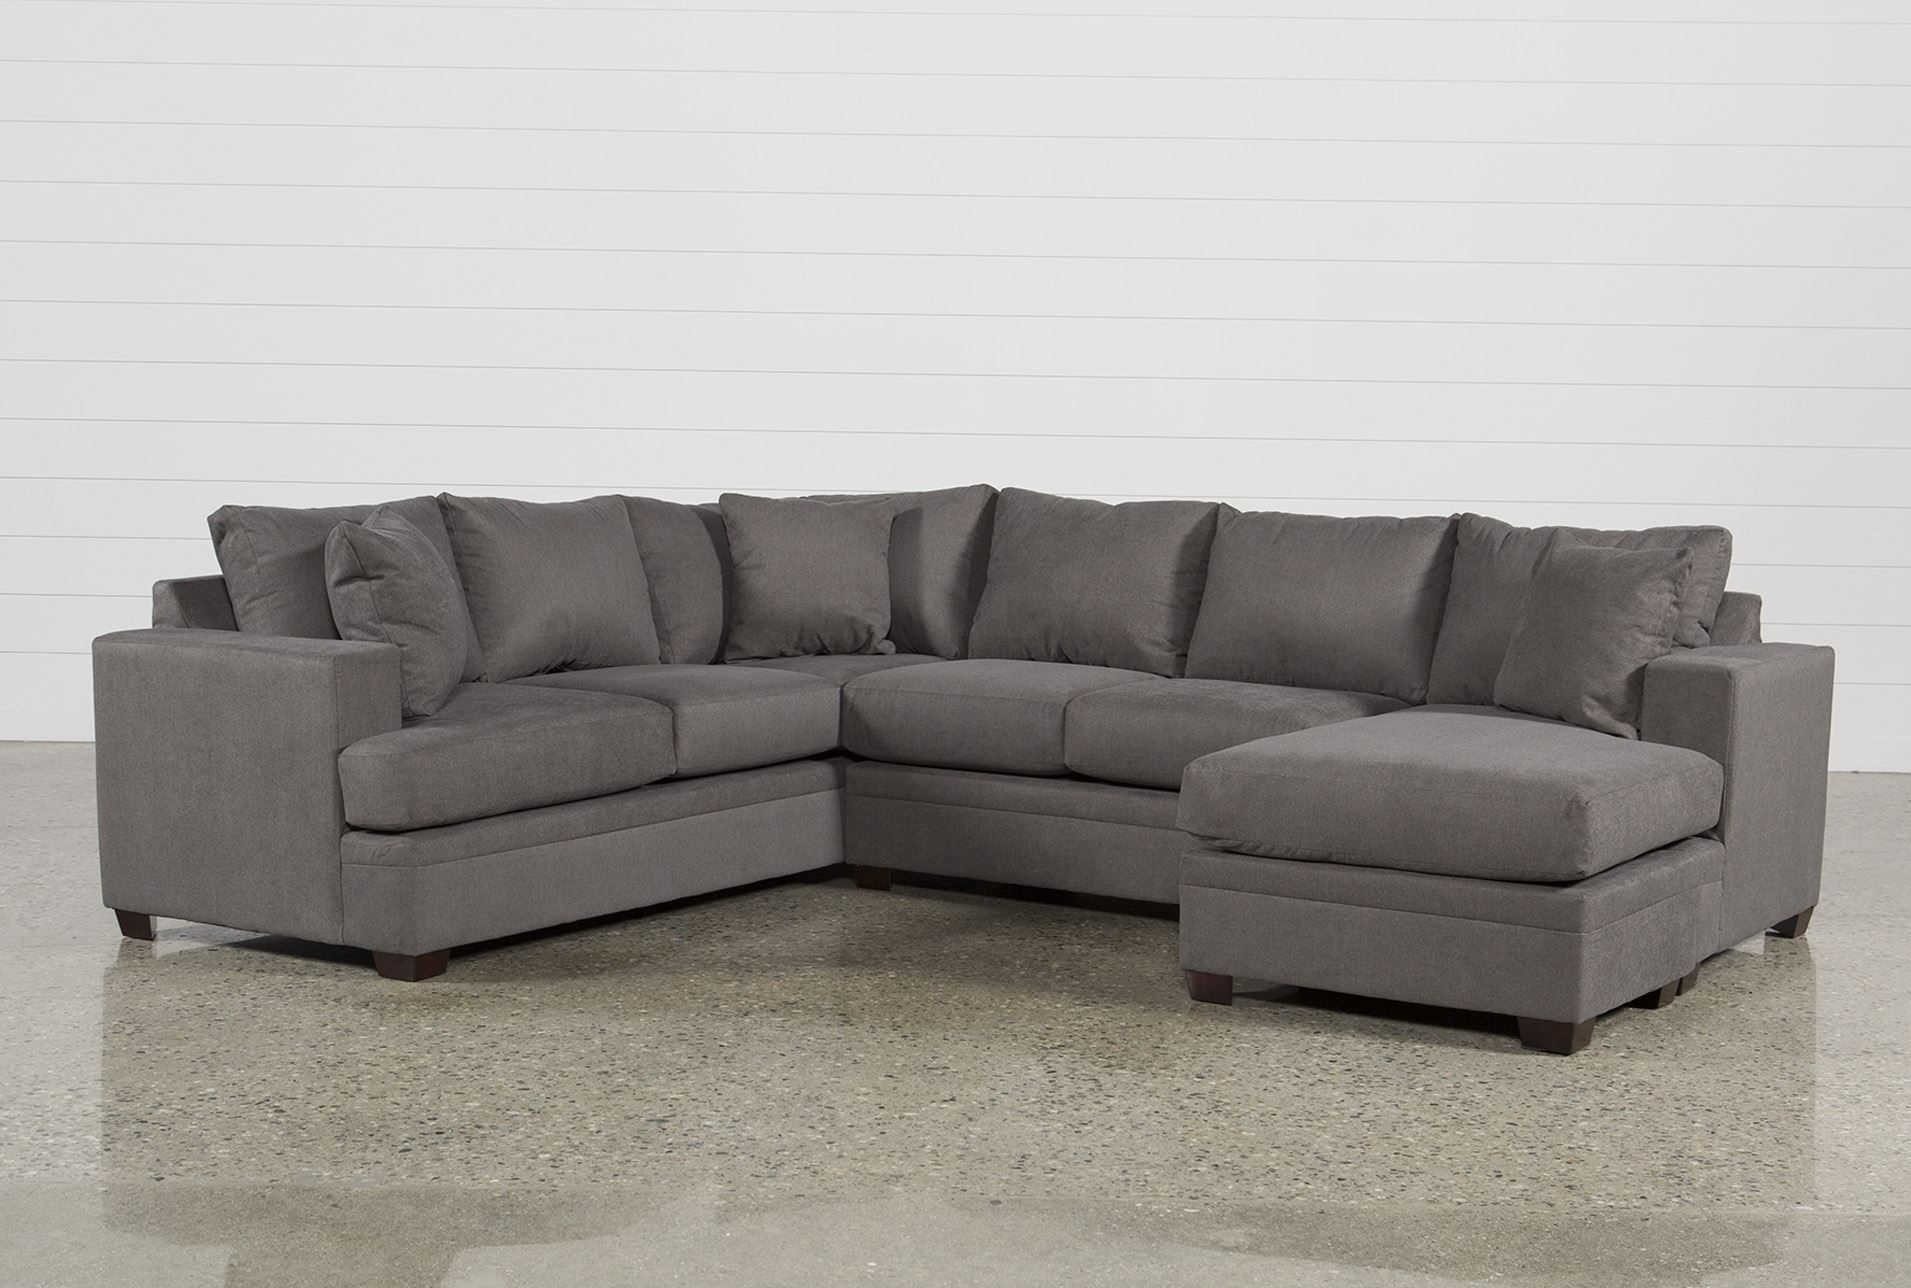 Kerri 2 Piece Sectional W/raf Chaise In 2018 | Products | Pinterest Inside Cosmos Grey 2 Piece Sectionals With Raf Chaise (Photo 4 of 30)